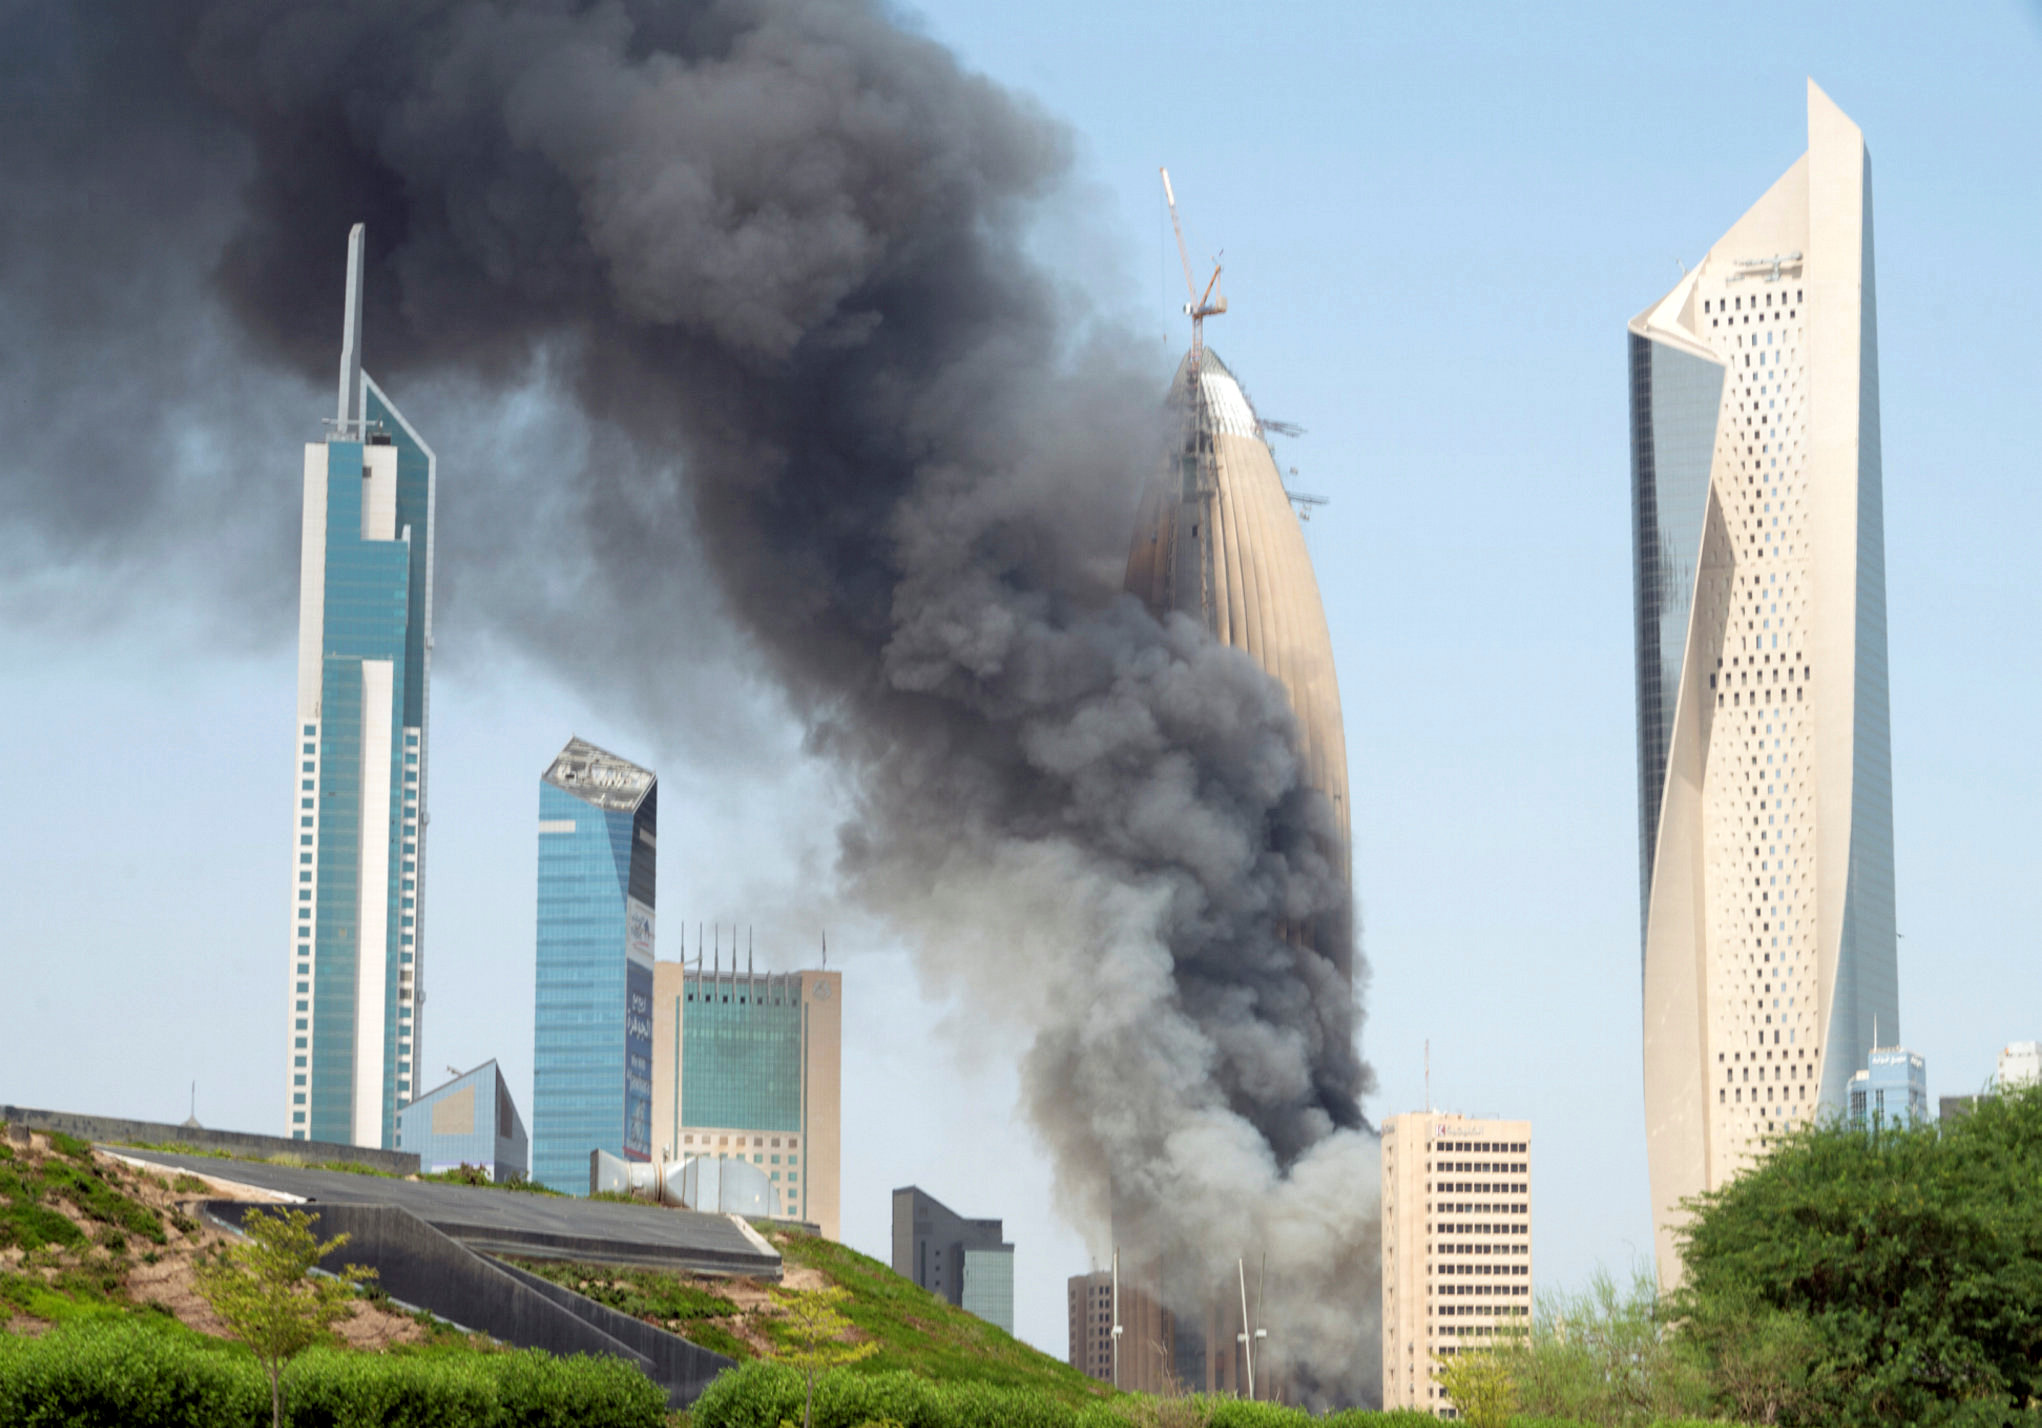 National Bank of Kuwait says fire put down at headquarters